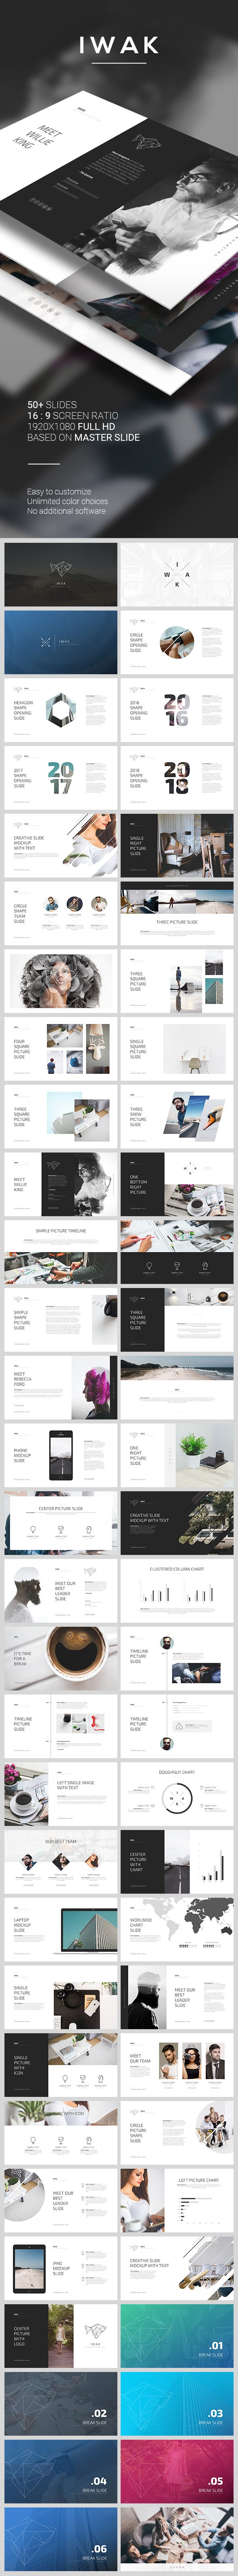 IWAK PowerPoint Template (PowerPoint Templates) | Template, Keynote ...